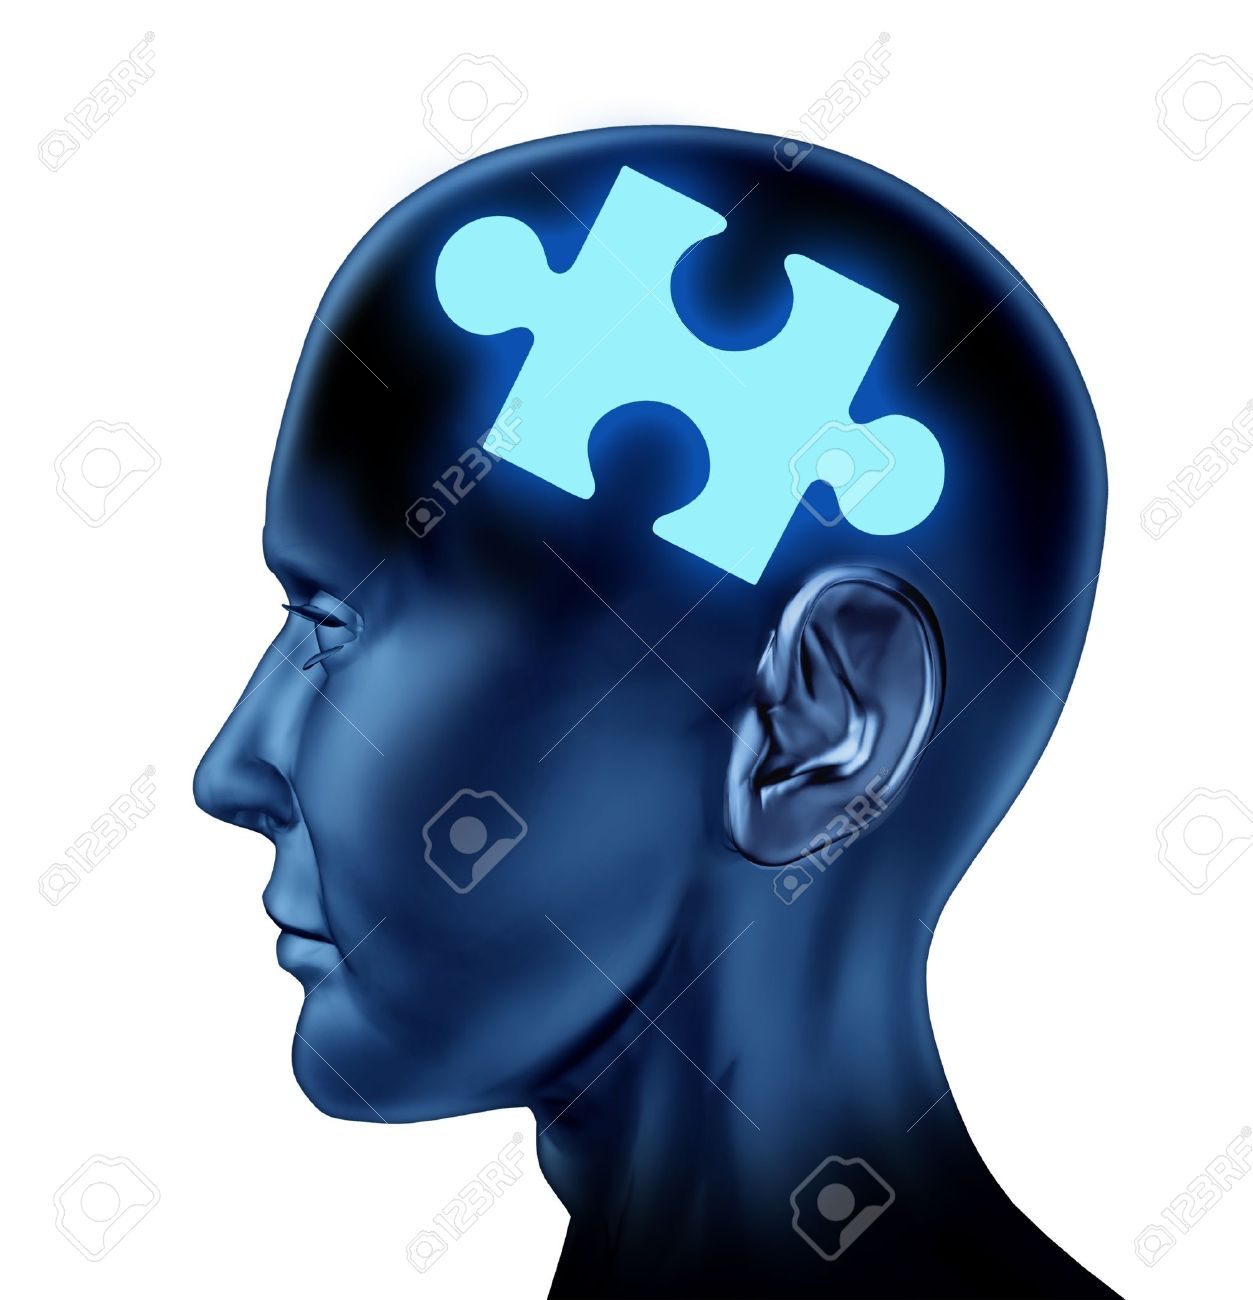 Puzzled brain representing solutions and creativity with a missing piece of the puzzle as a mental health icon isolated on a white background Stock Photo - 14119162